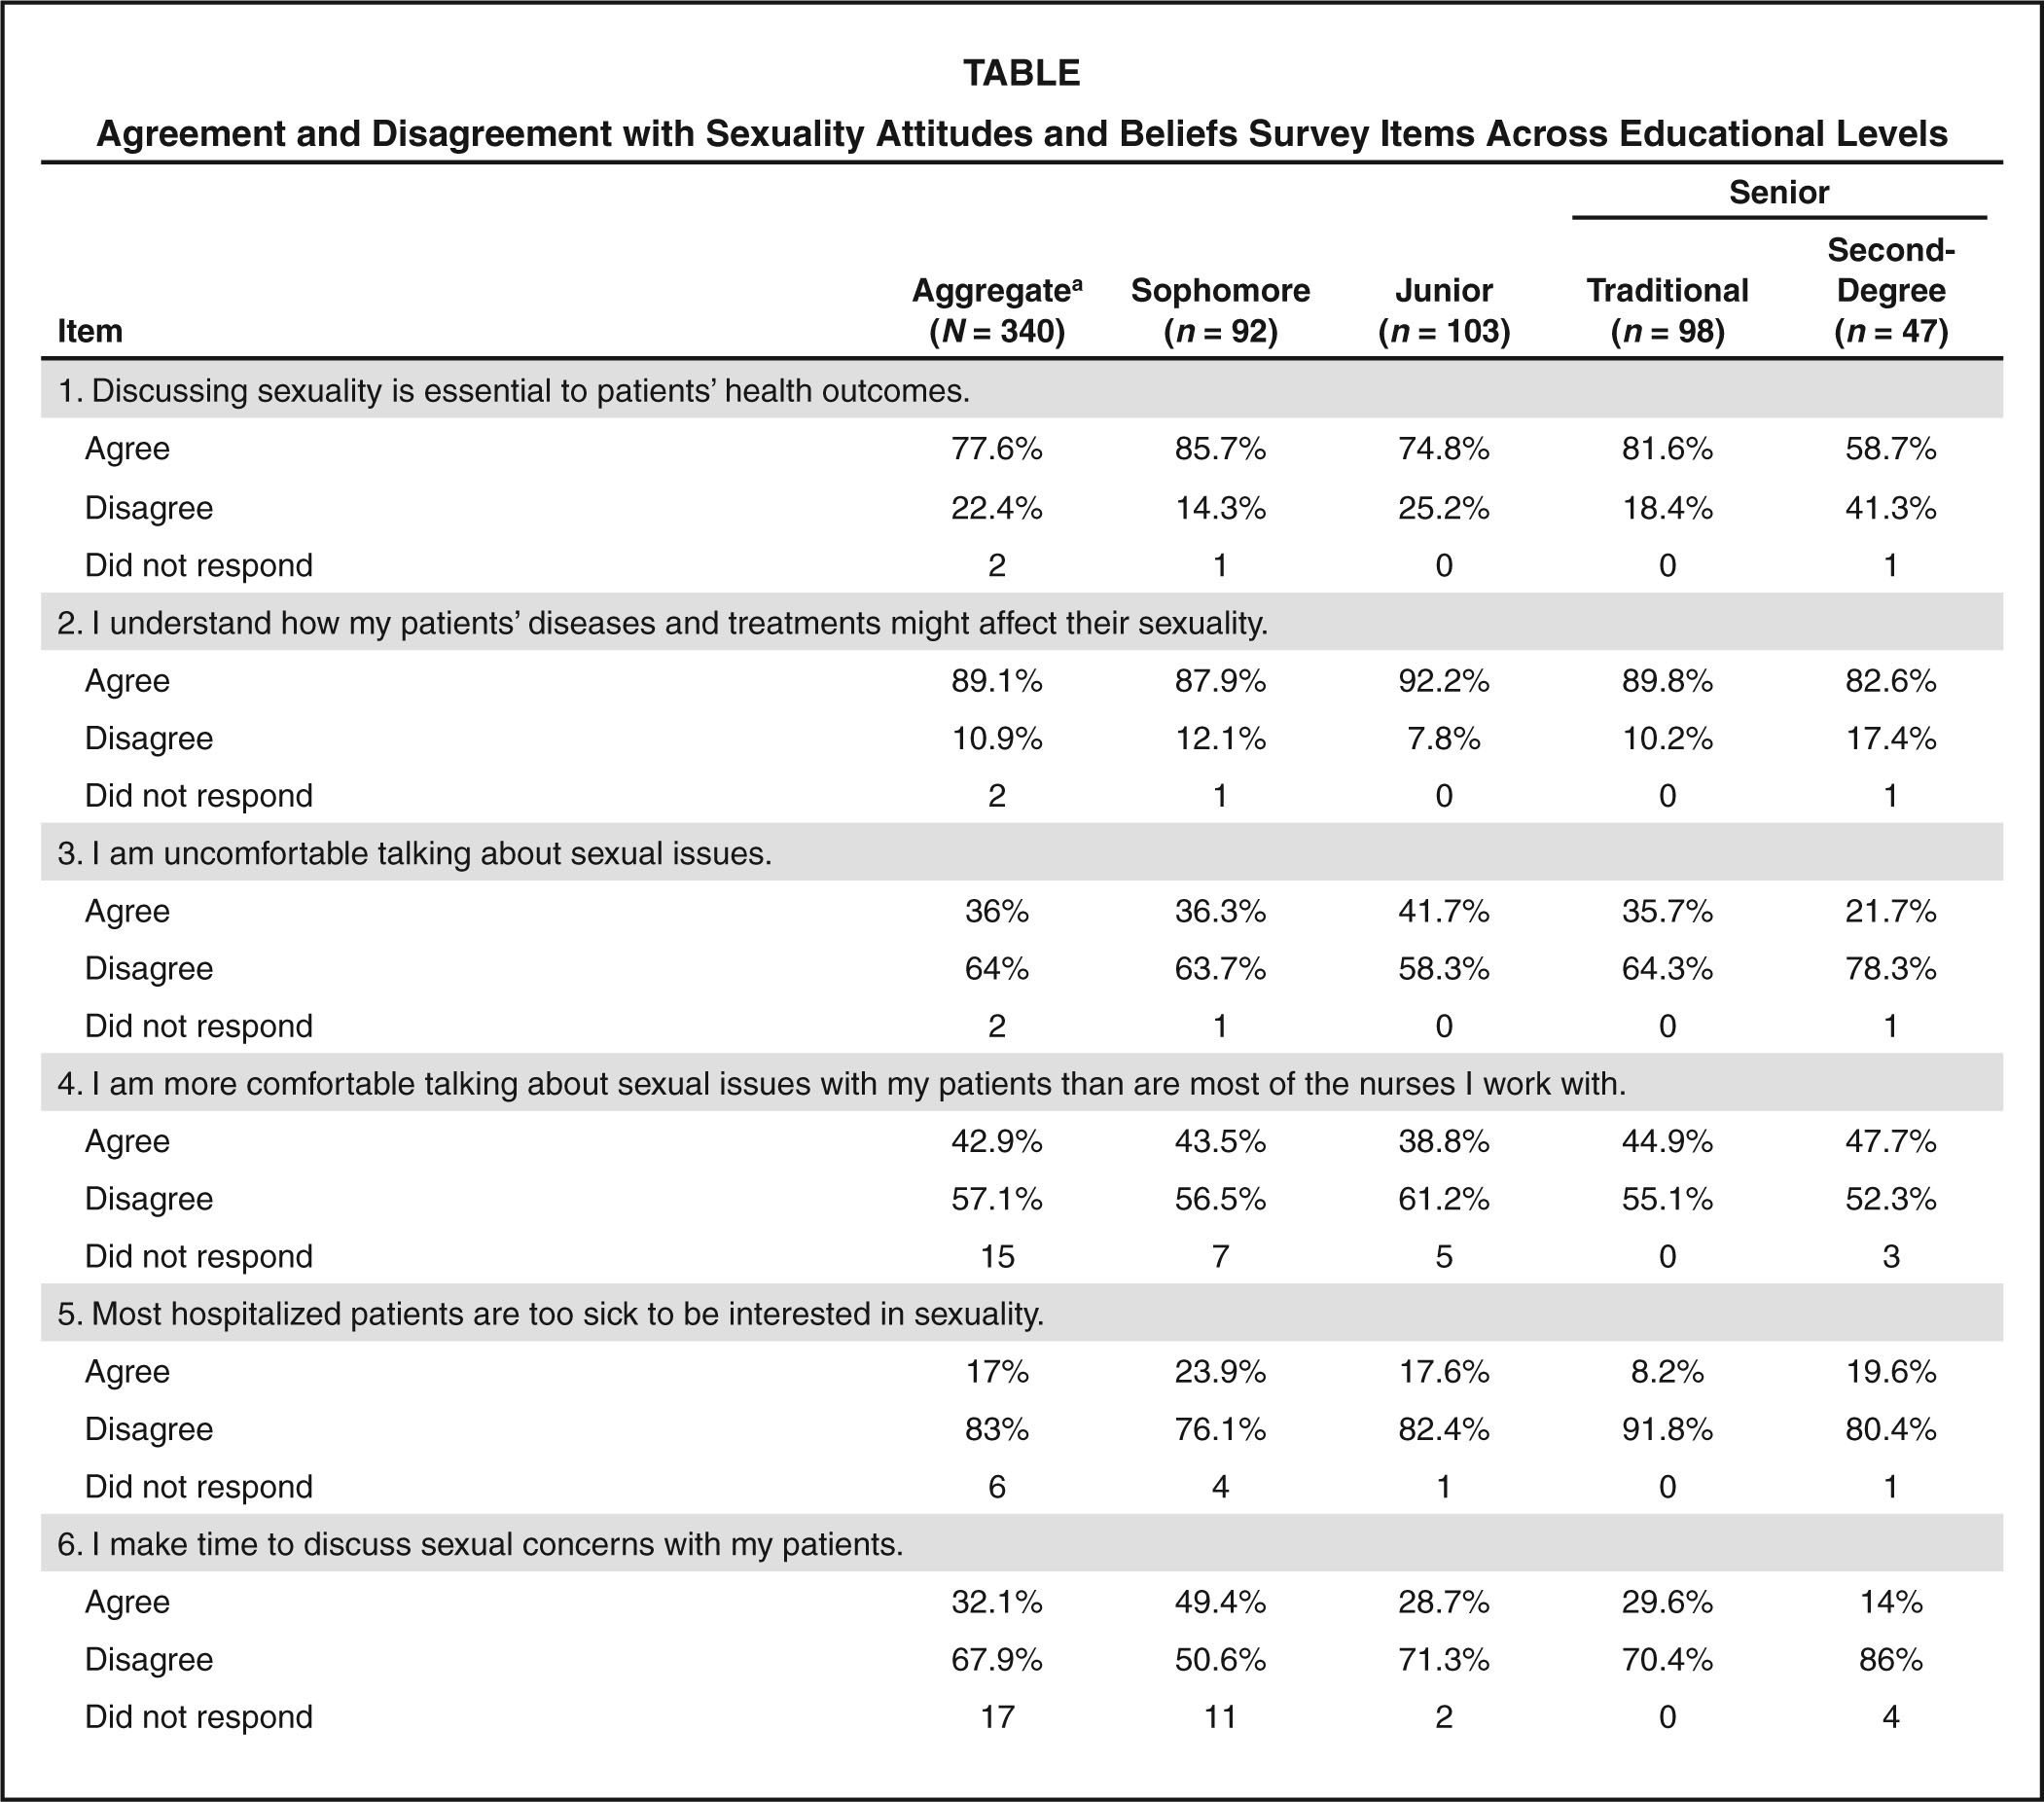 Agreement and Disagreement with Sexuality Attitudes and Beliefs Survey Items Across Educational Levels